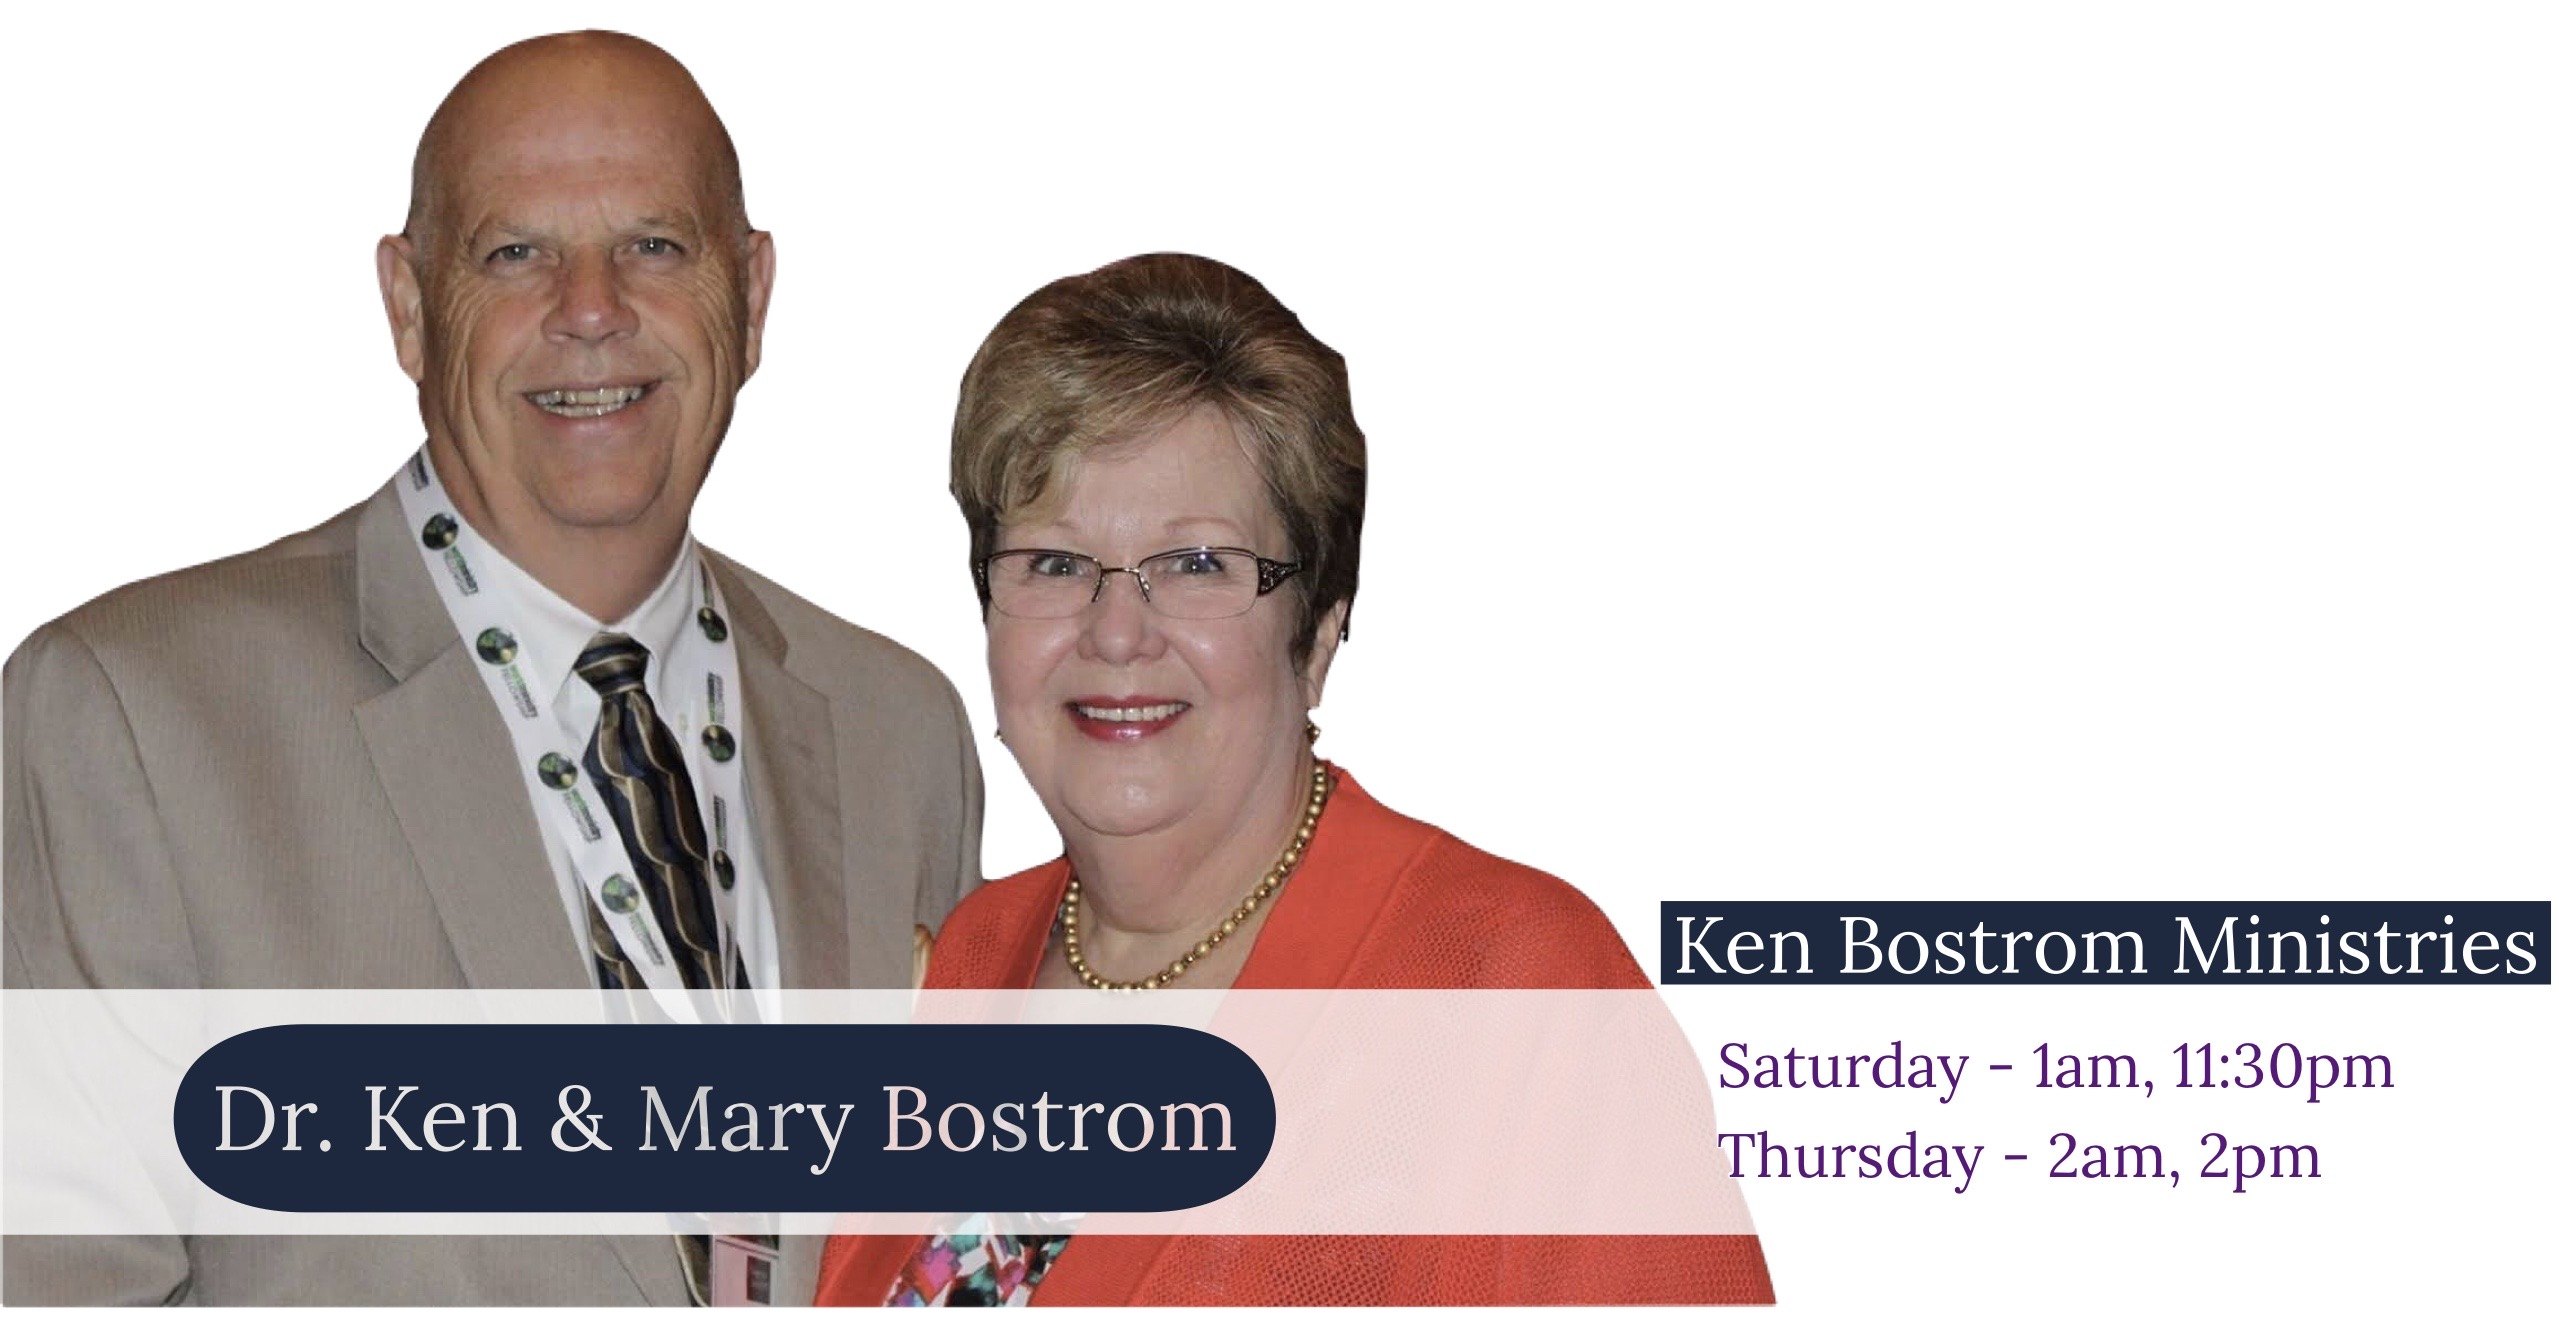 Dr. Ken & Mary Bostrom